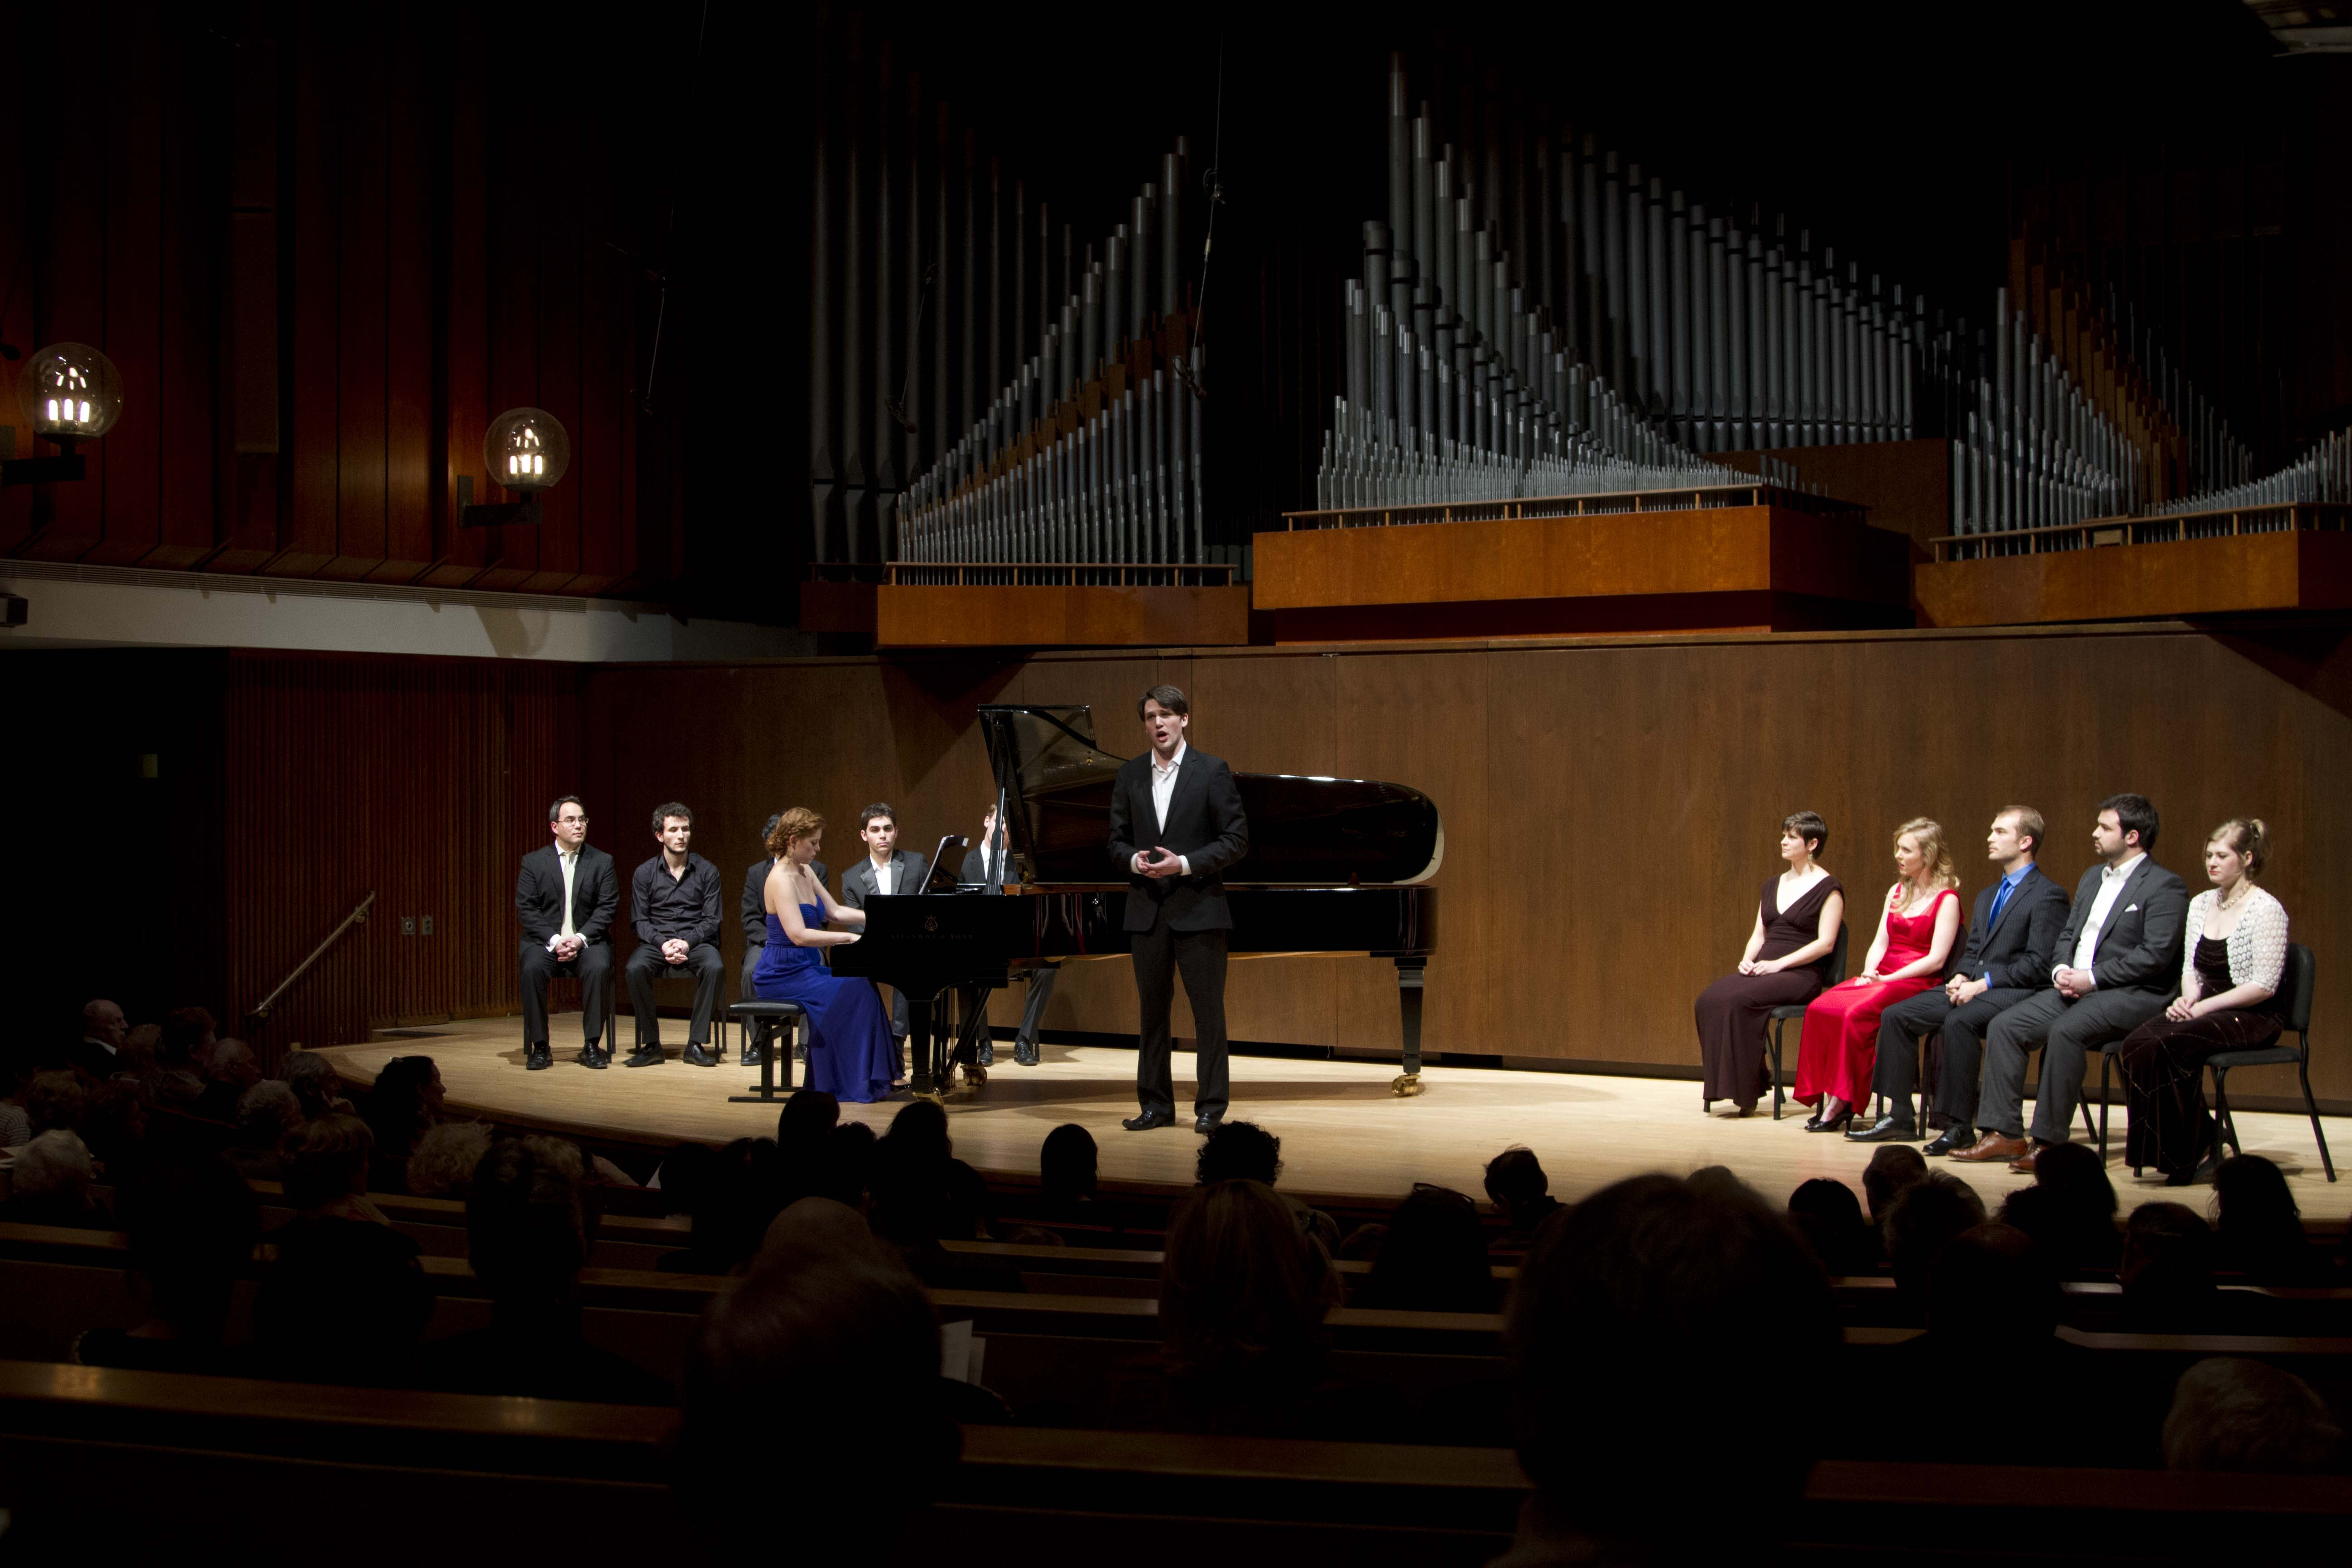 Juilliard singers performing an all-Czech Liederabend in Juilliard's Paul Hall